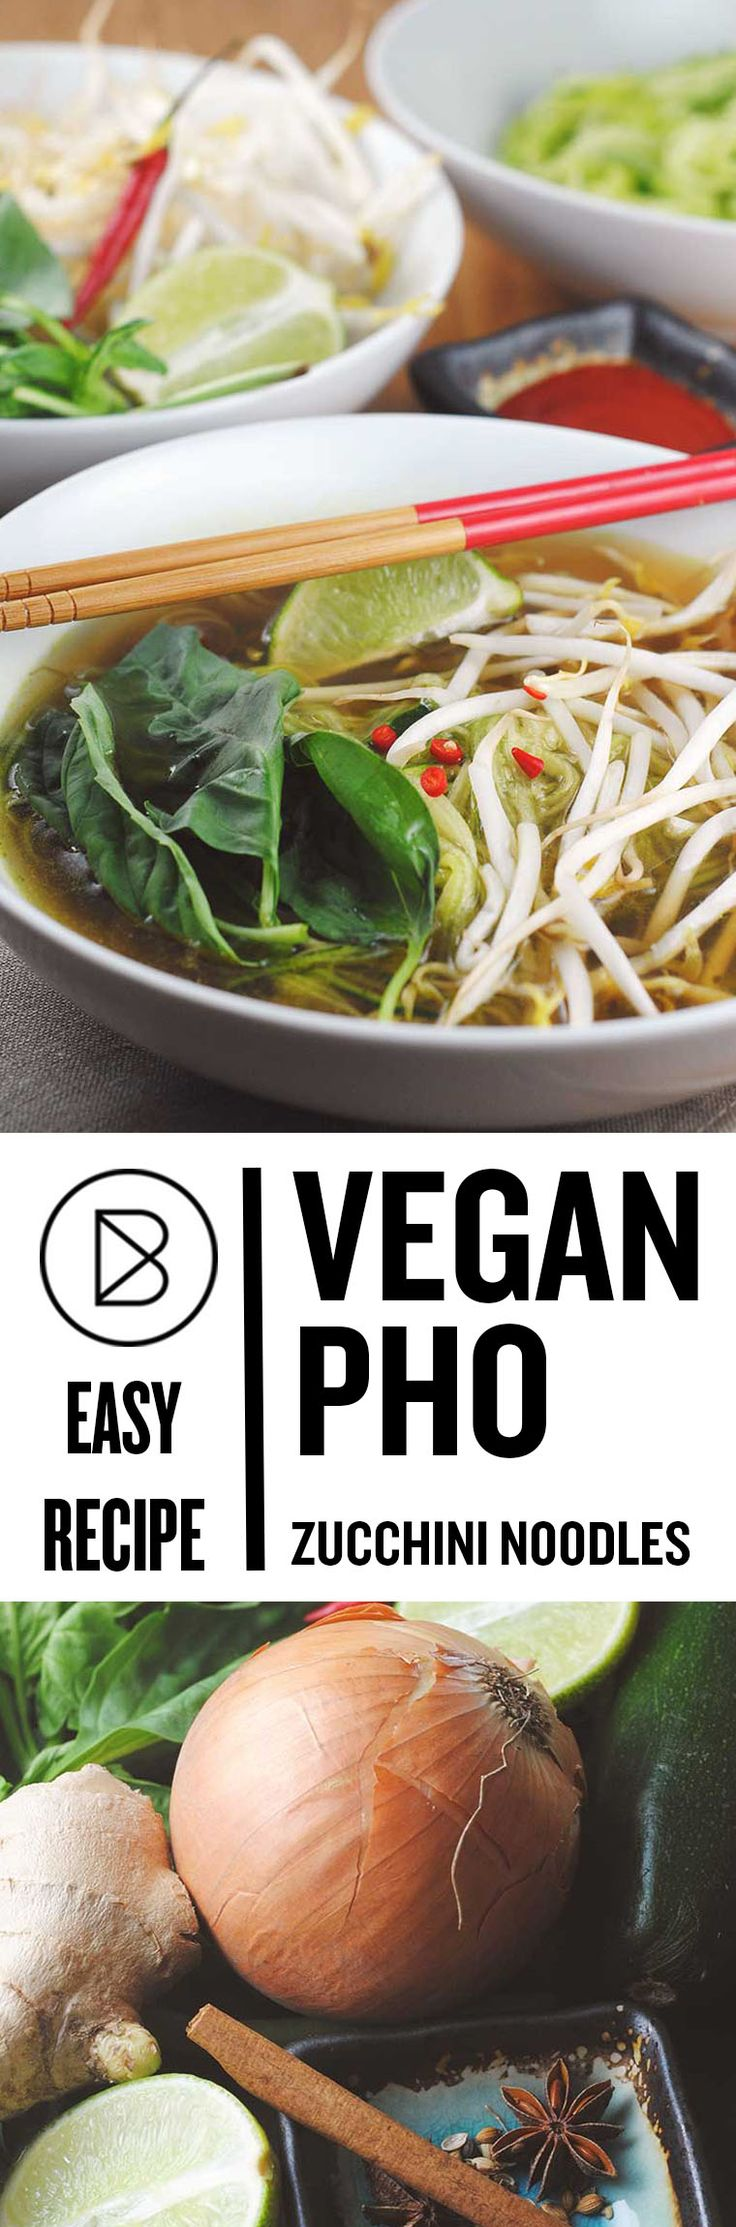 Easy vegan pho with zucchini noodles. This is also low carb, keto and you gluten-free if you replace soy sauce with Bragg's liquid aminos.